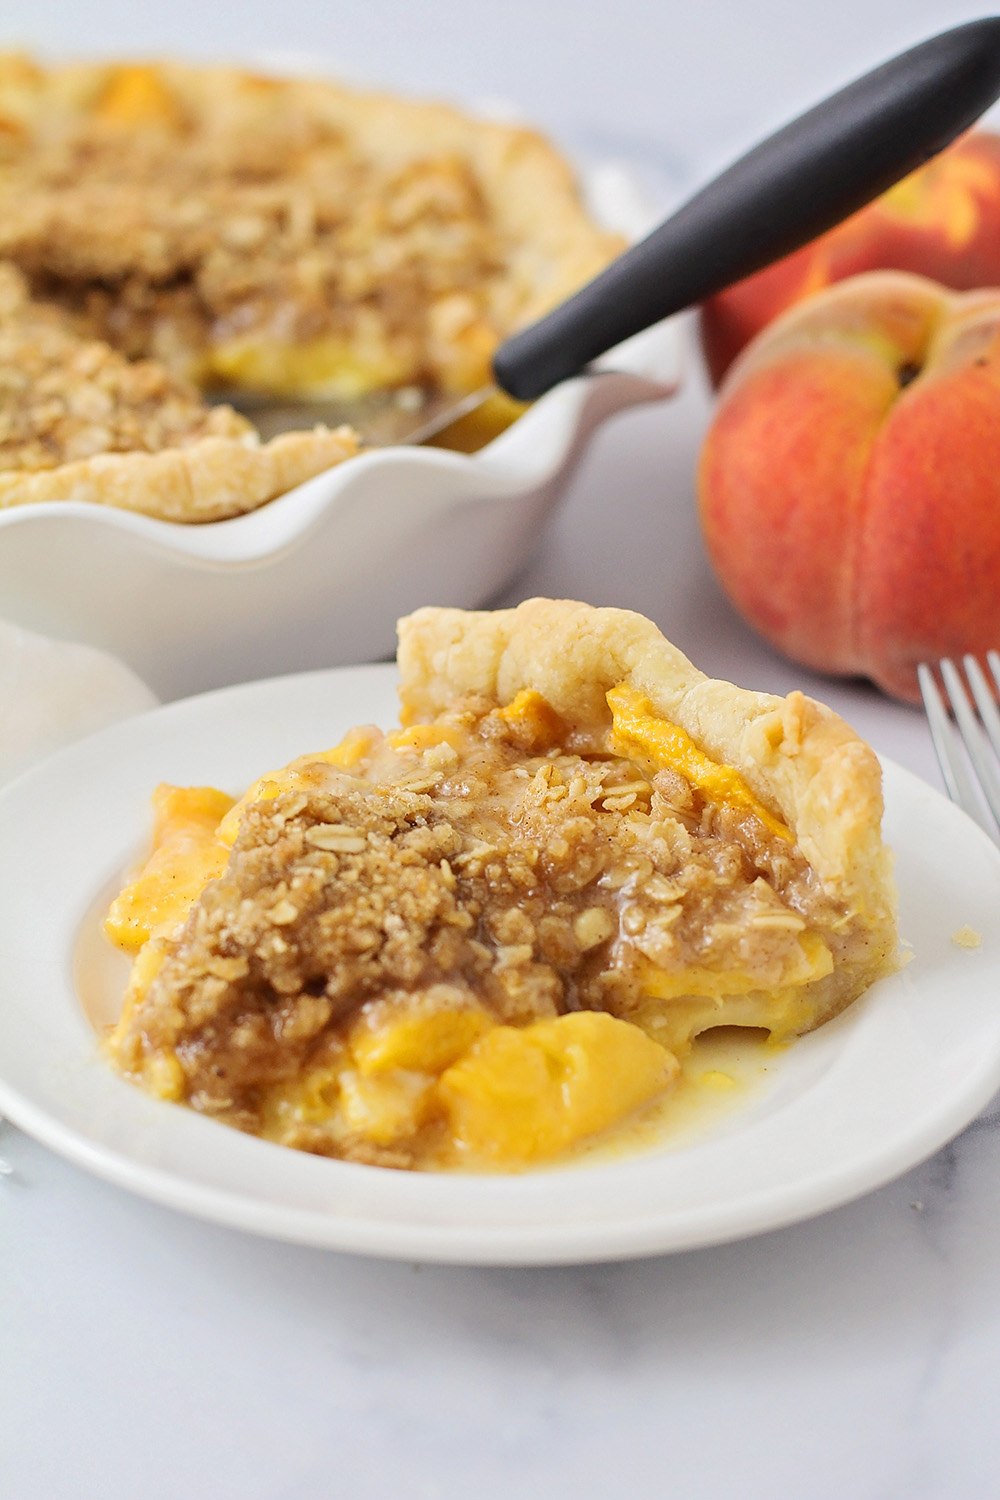 This peach crisp pie is loaded with juicy fresh peaches, all covered with buttery cinnamon crisp topping!